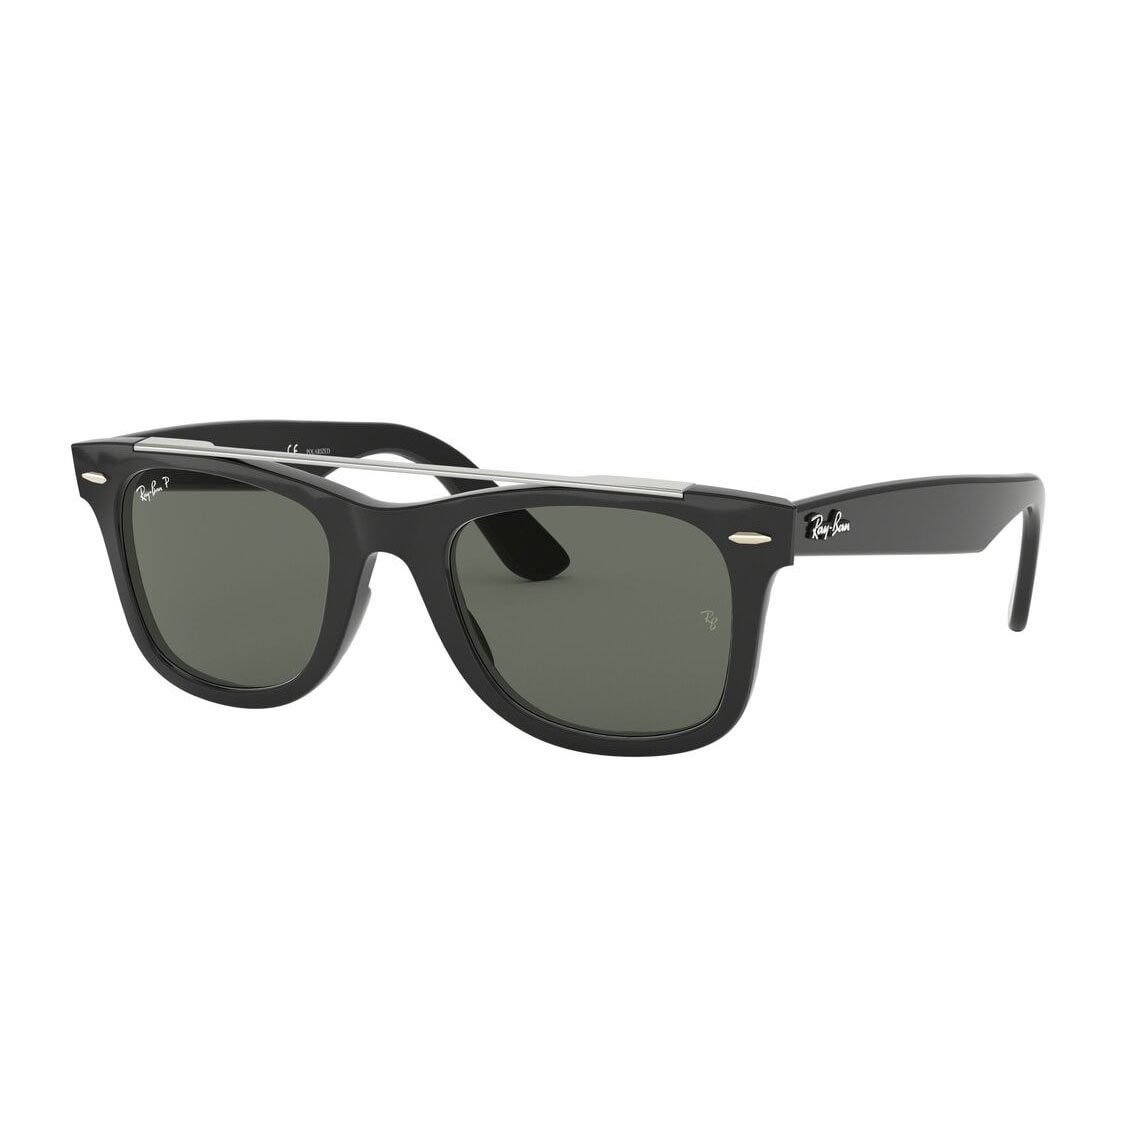 Ray-Ban Wayfarer Double Bridge RB4540 601/58 5022